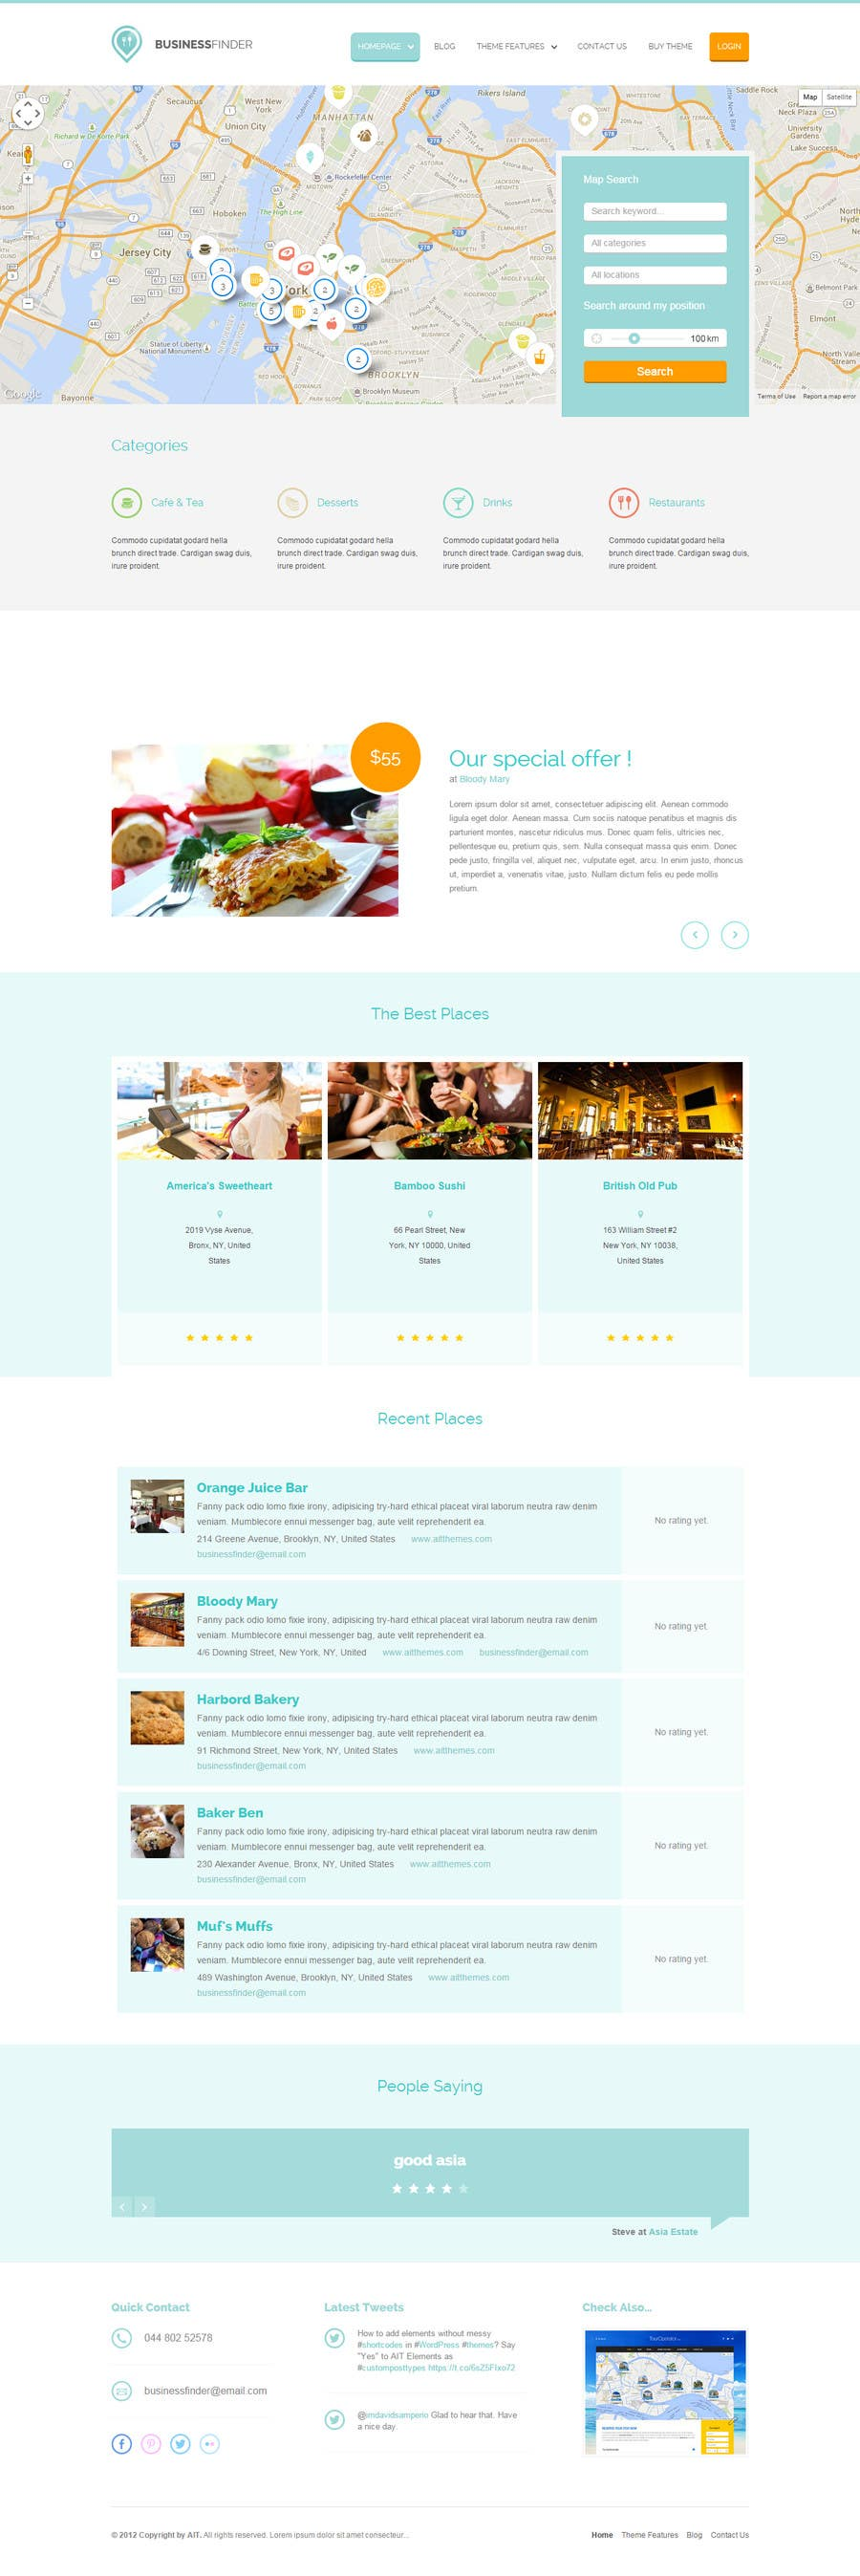 Bài tham dự cuộc thi #16 cho Mock up pages for a real estate site utilizing the ken WordPress theme